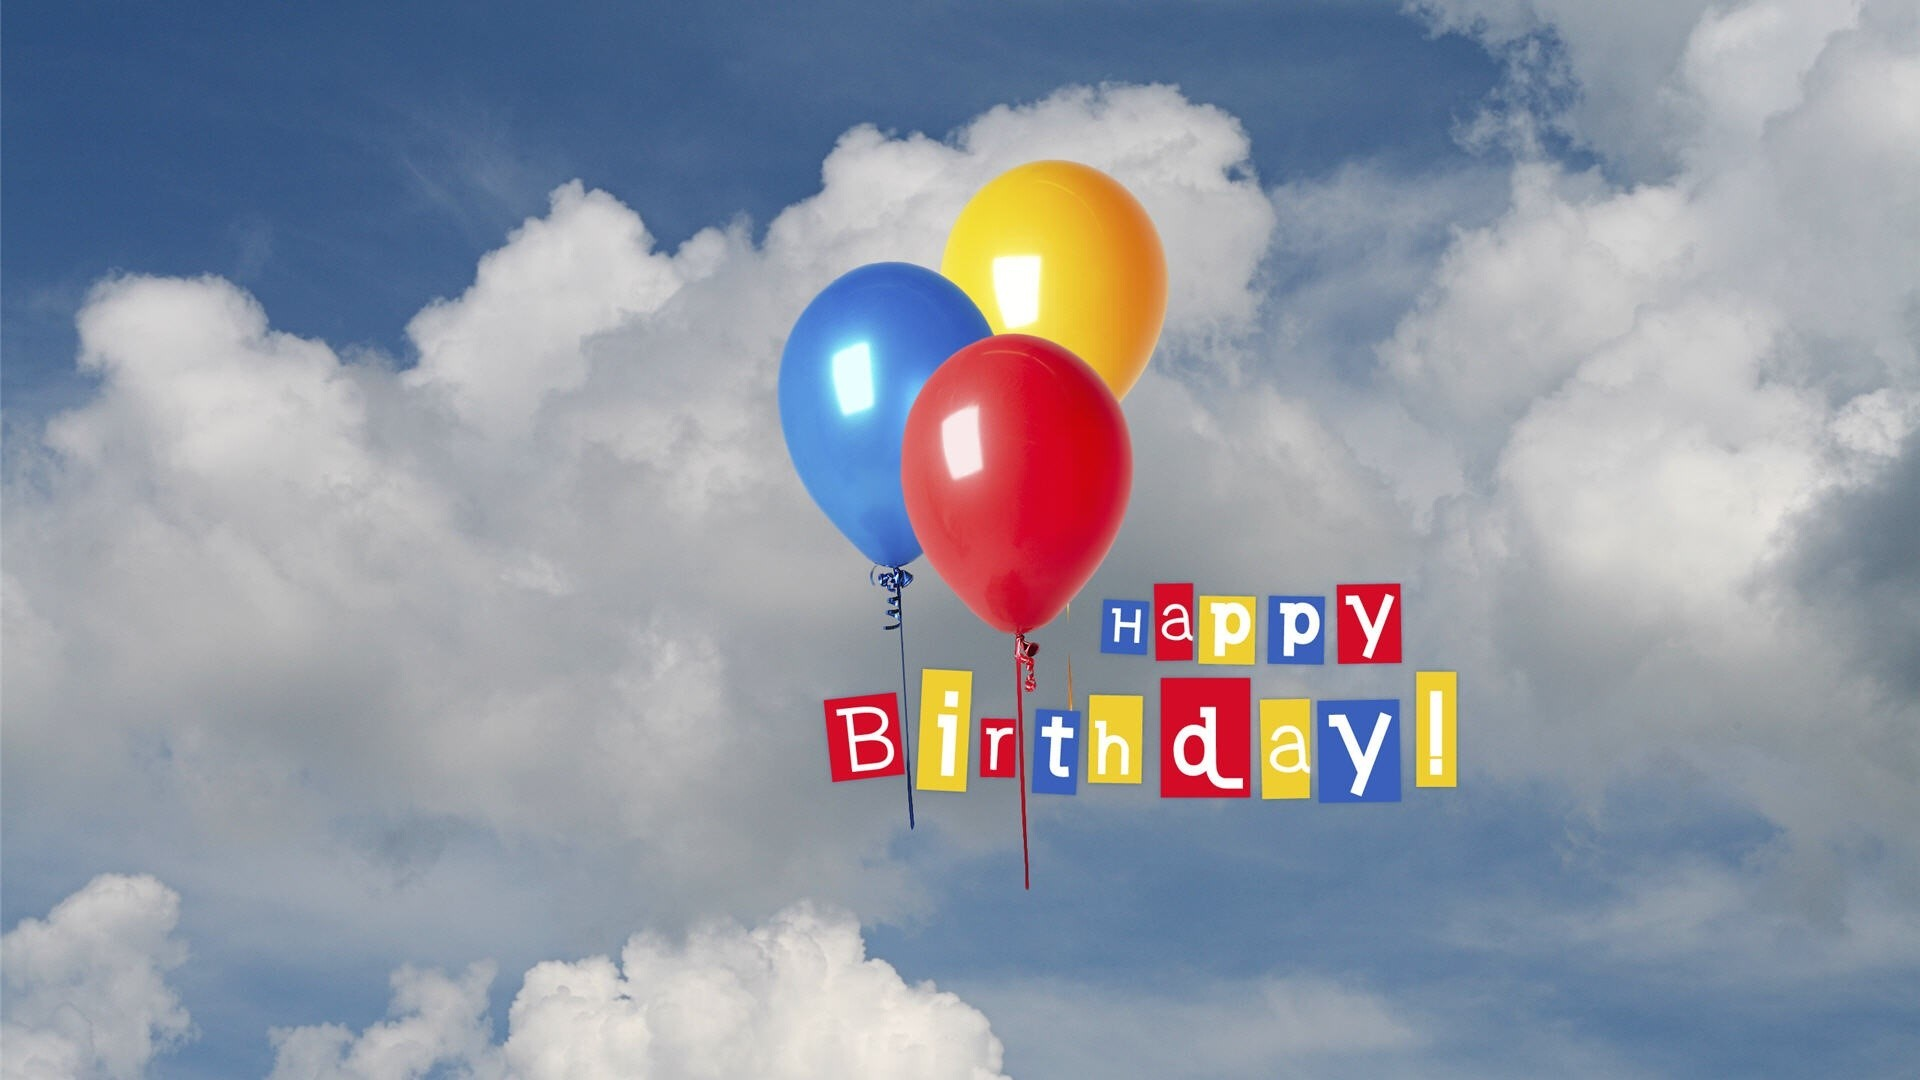 Happy birthday greetings in sky with balloon wallpapers - Happy birthday card wallpaper ...